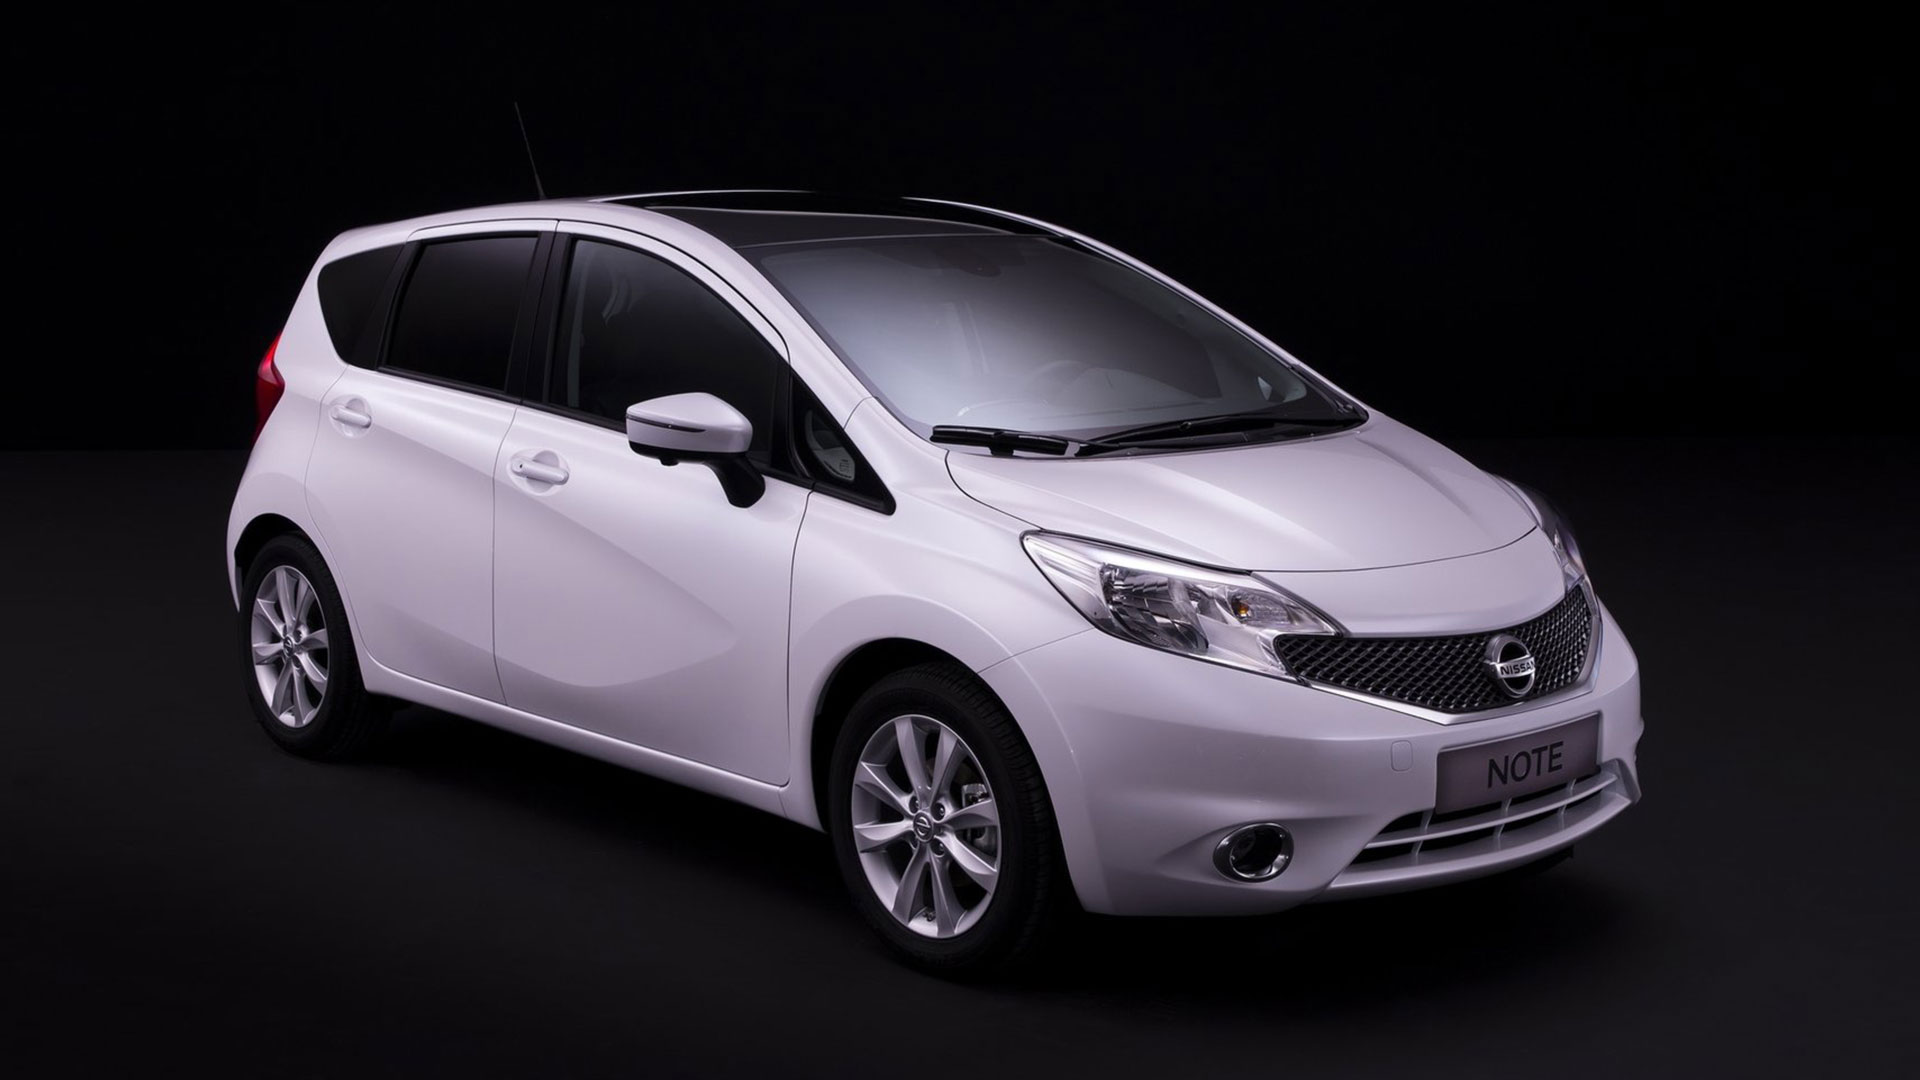 Nissan Note 4X4 photos